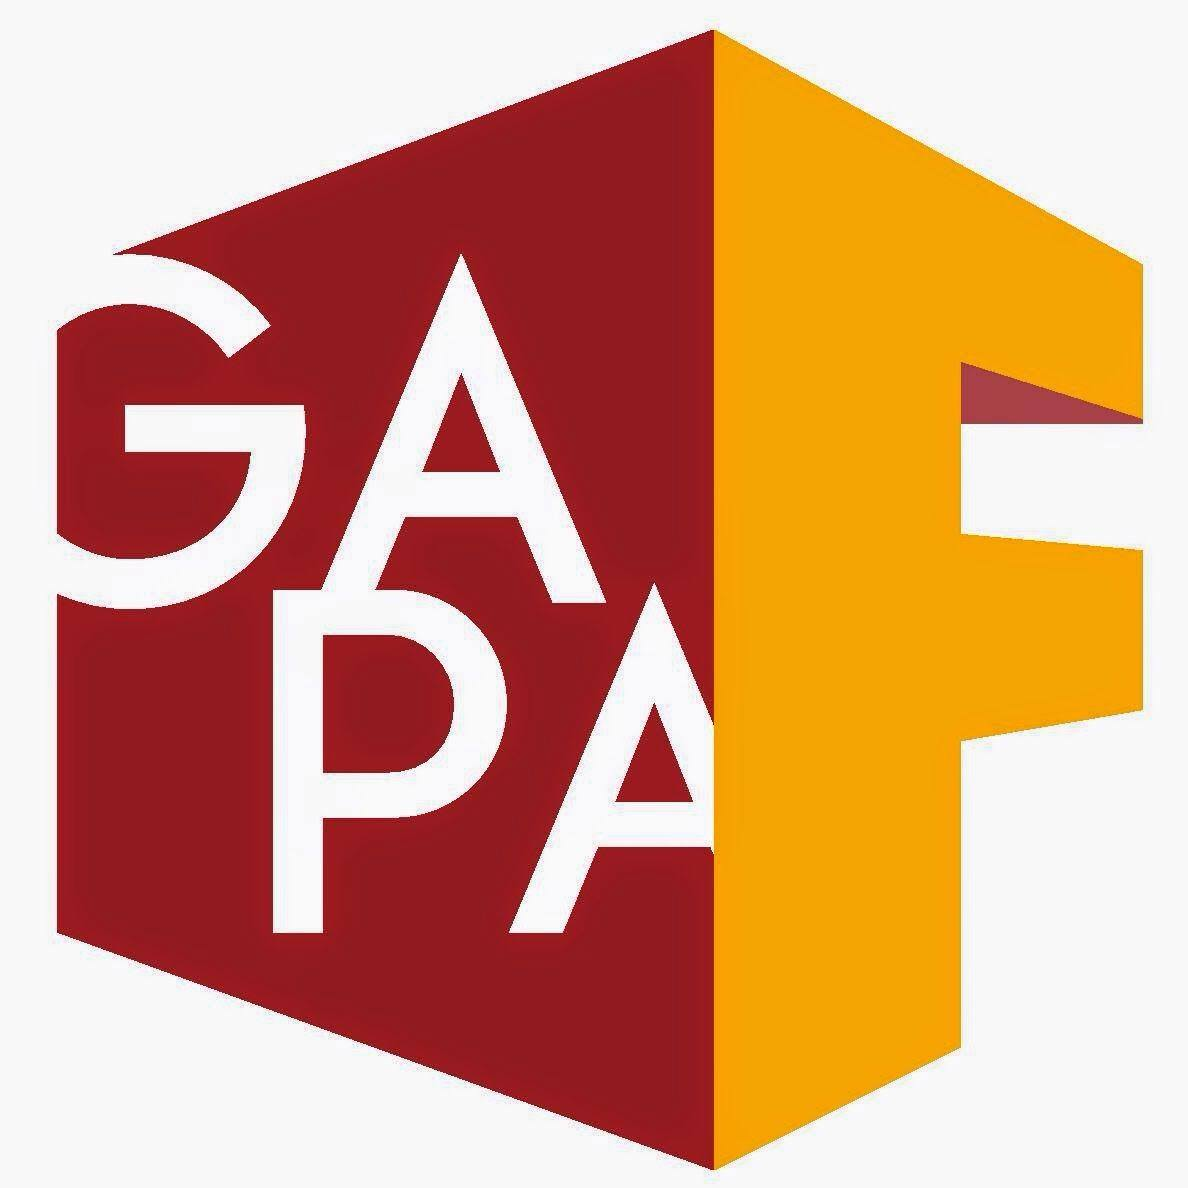 Gay Asian Pacific Alliance Foundation